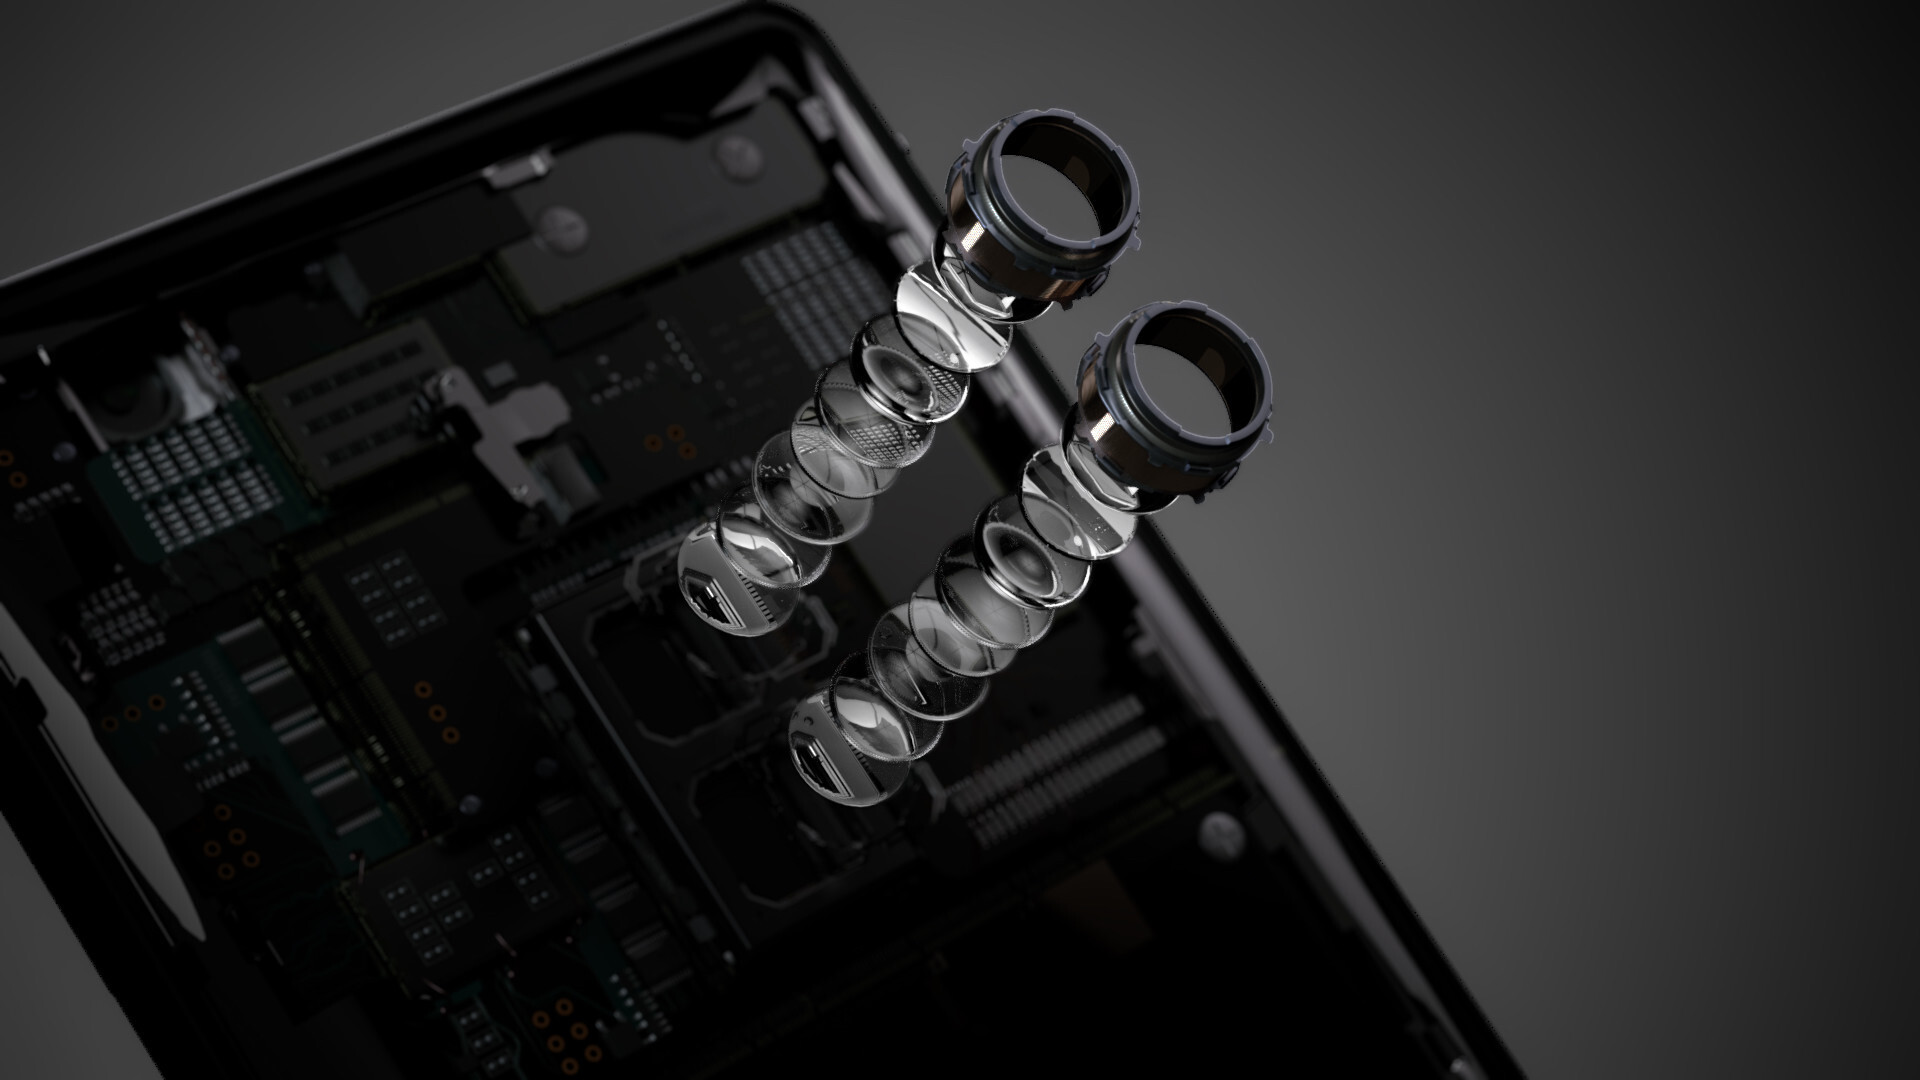 https://i-cdn.phonearena.com/images/articles/320183-image/13-Xperia-XZ2-Premium-Camera-Explosion.jpg